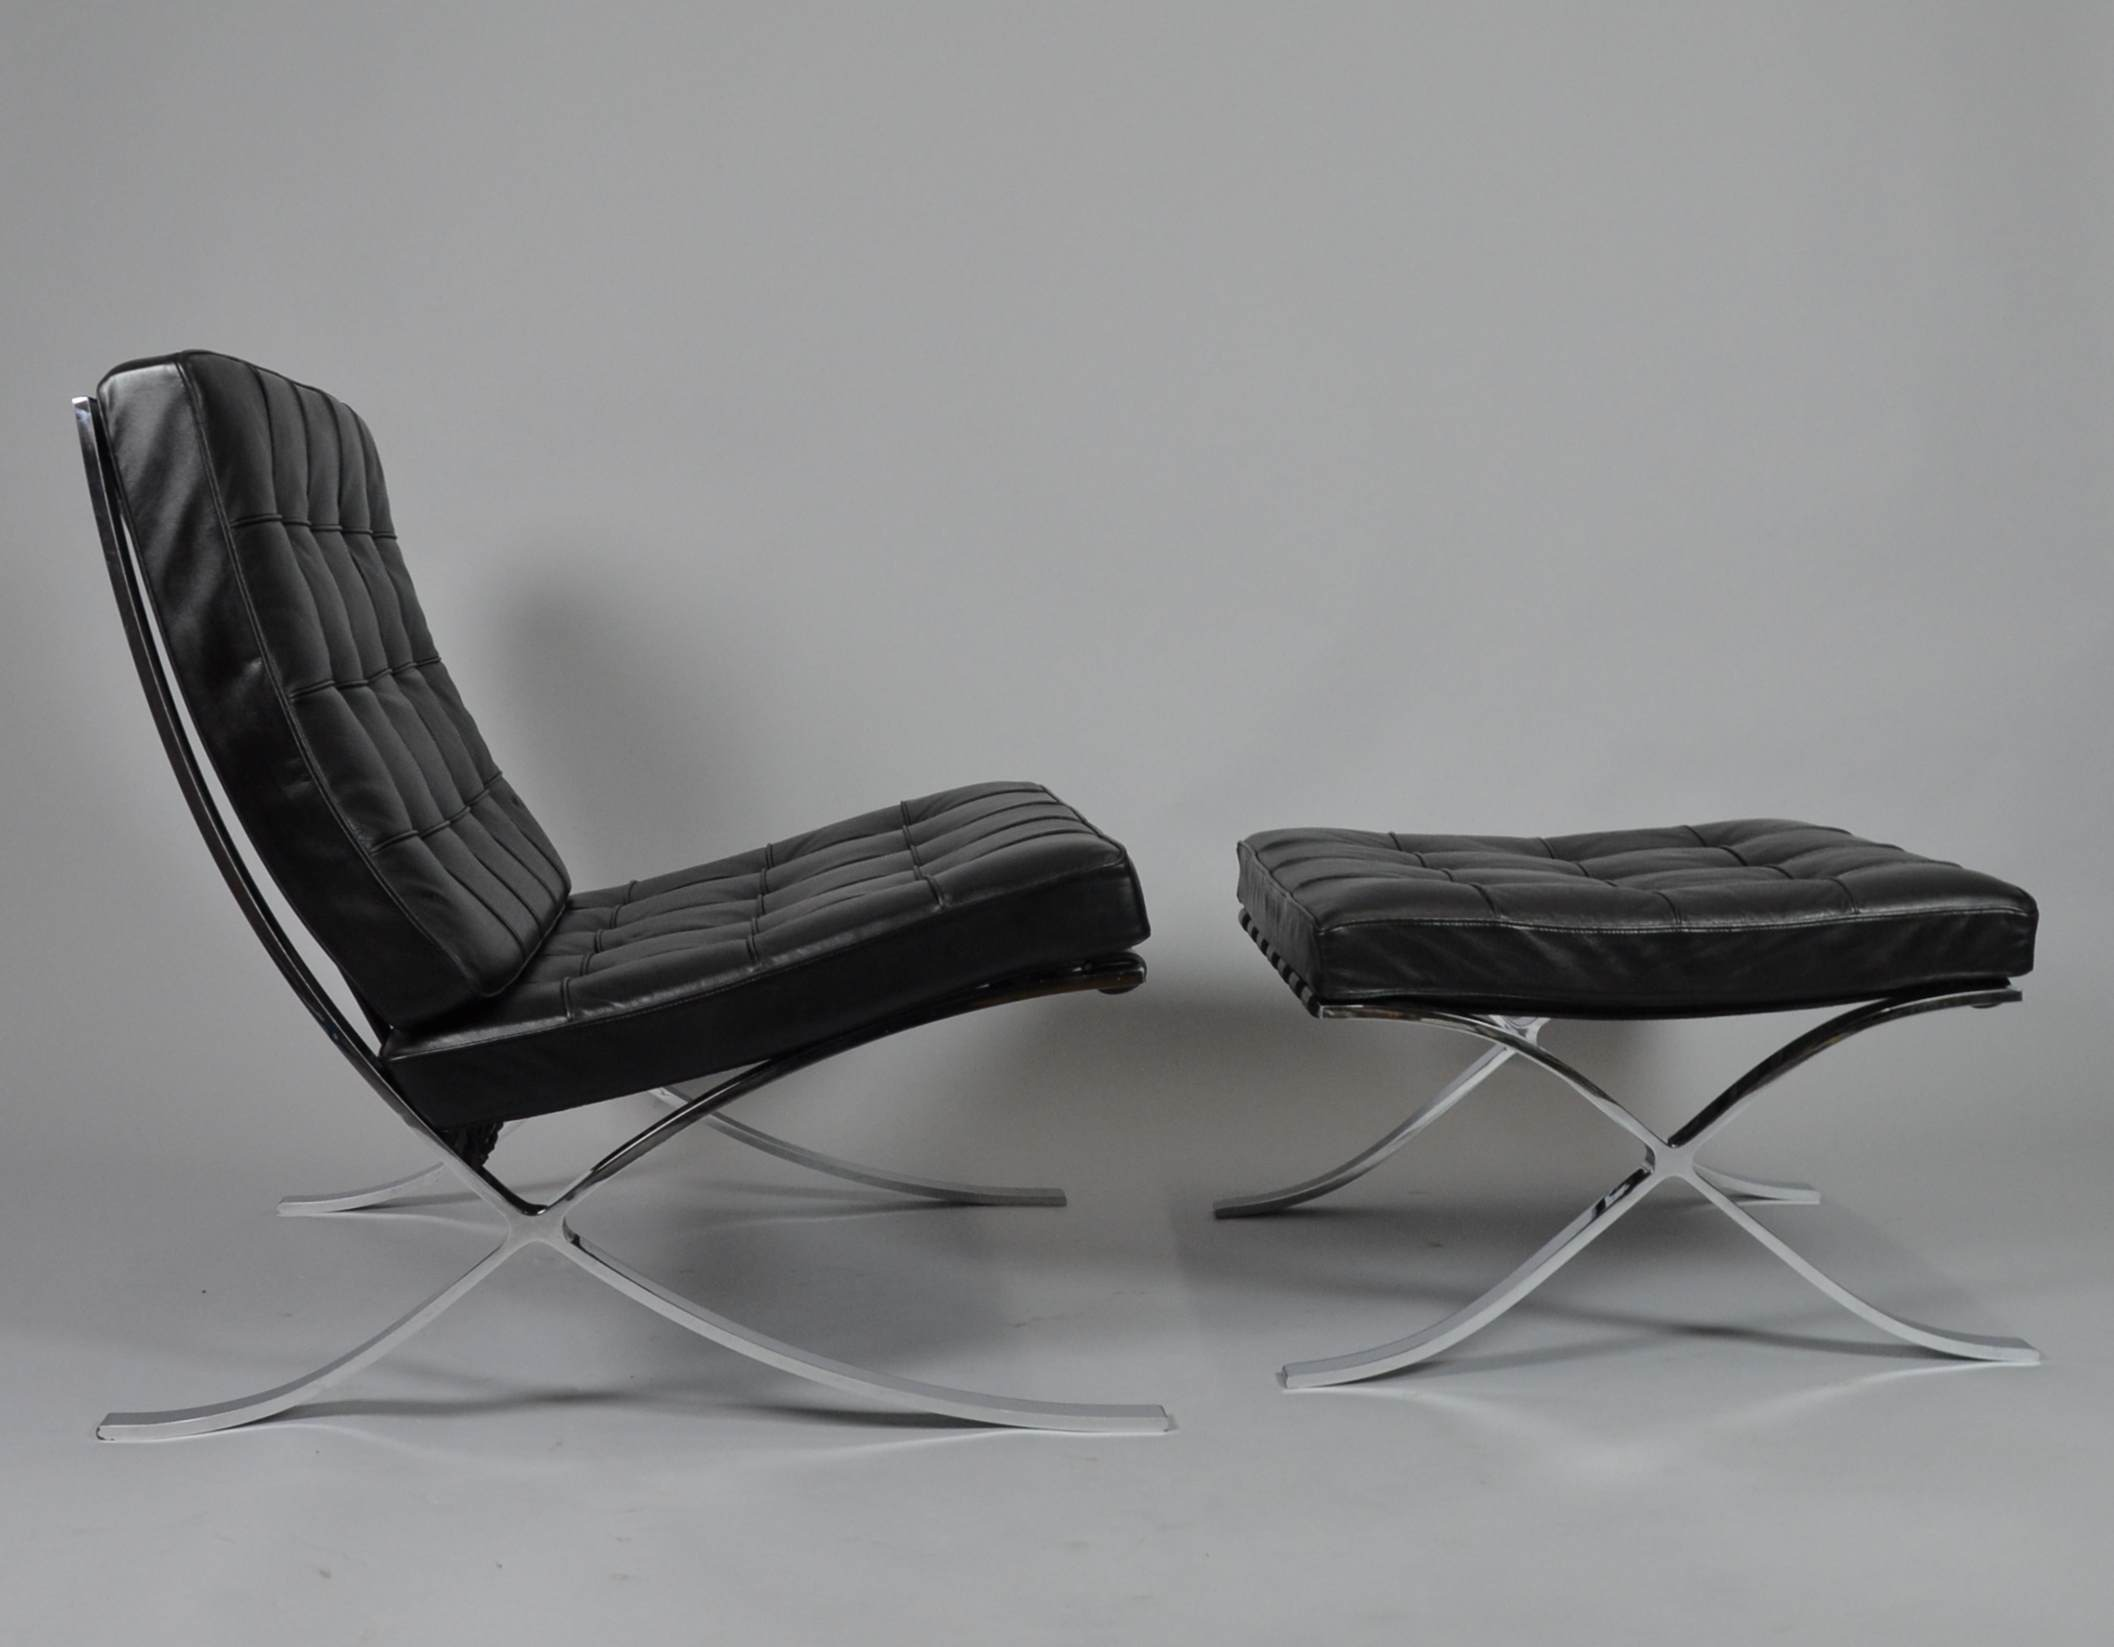 Knoll Sessel Gebraucht Ludwig Mies Van Der Rohe Barcelona Sessel Mit Ottomane Furniture